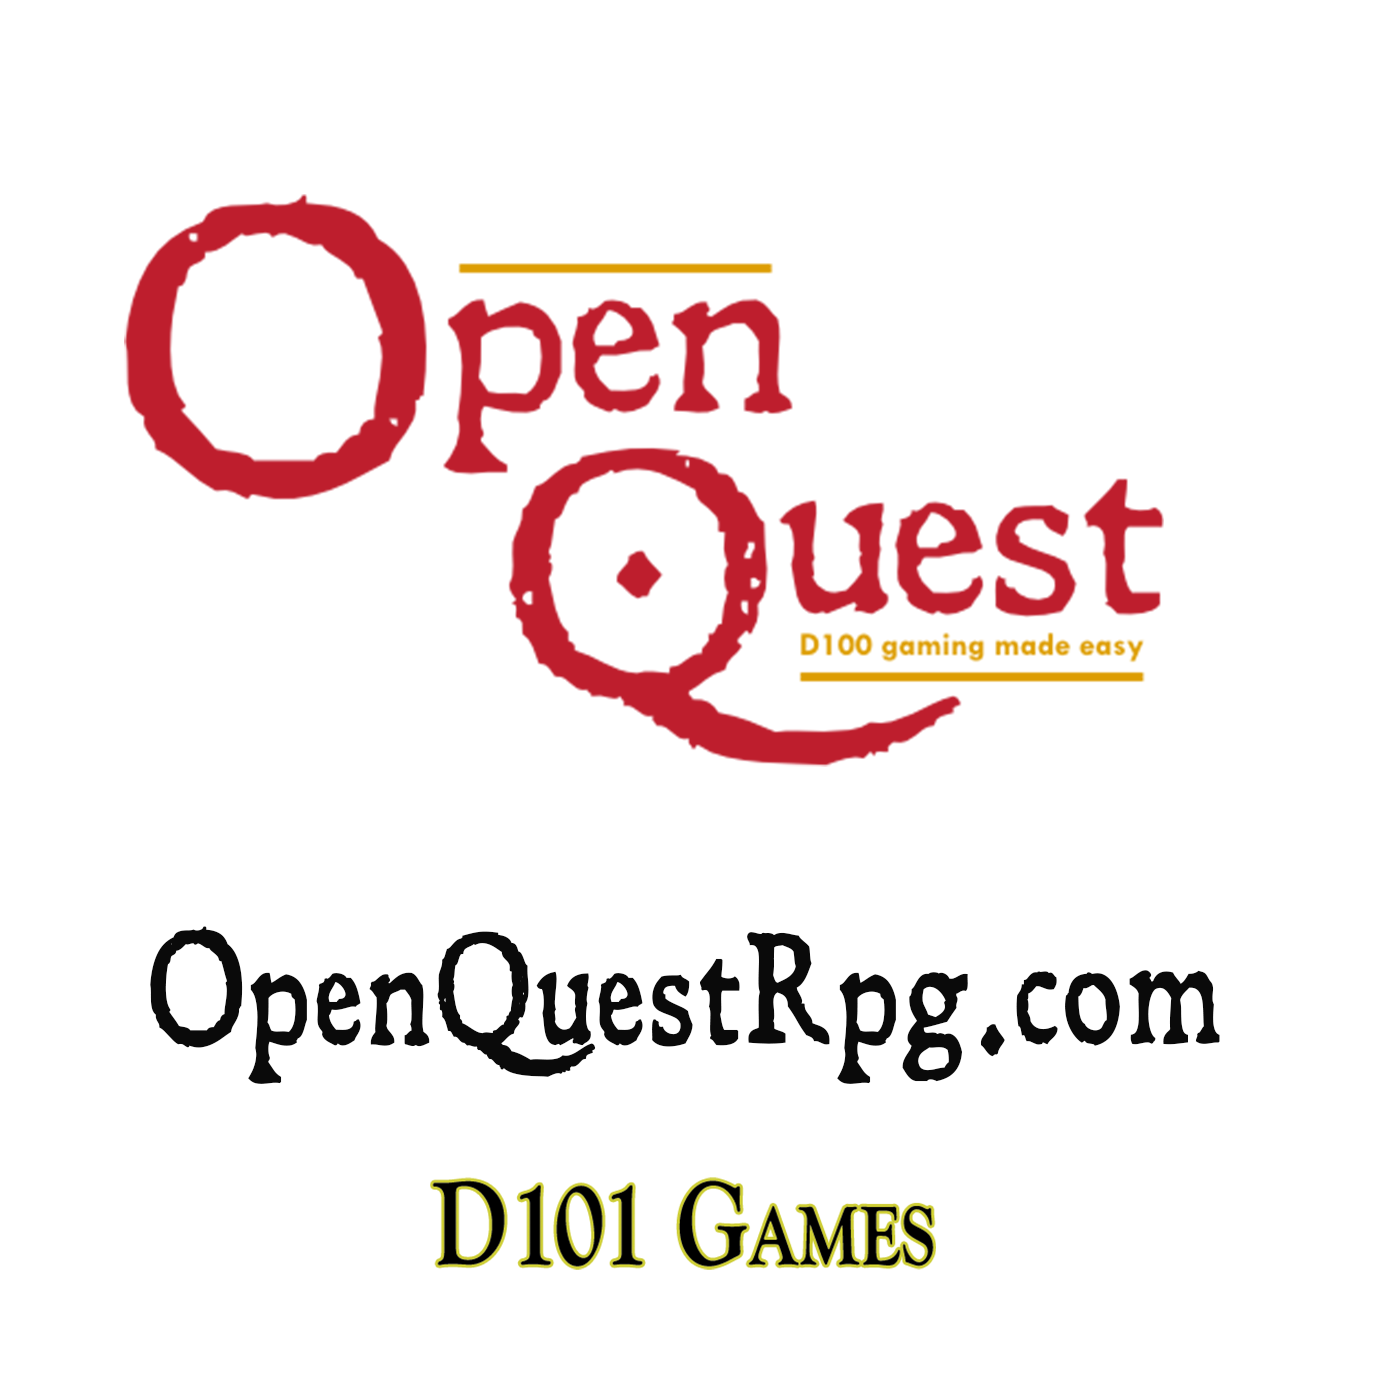 The OpenQuester